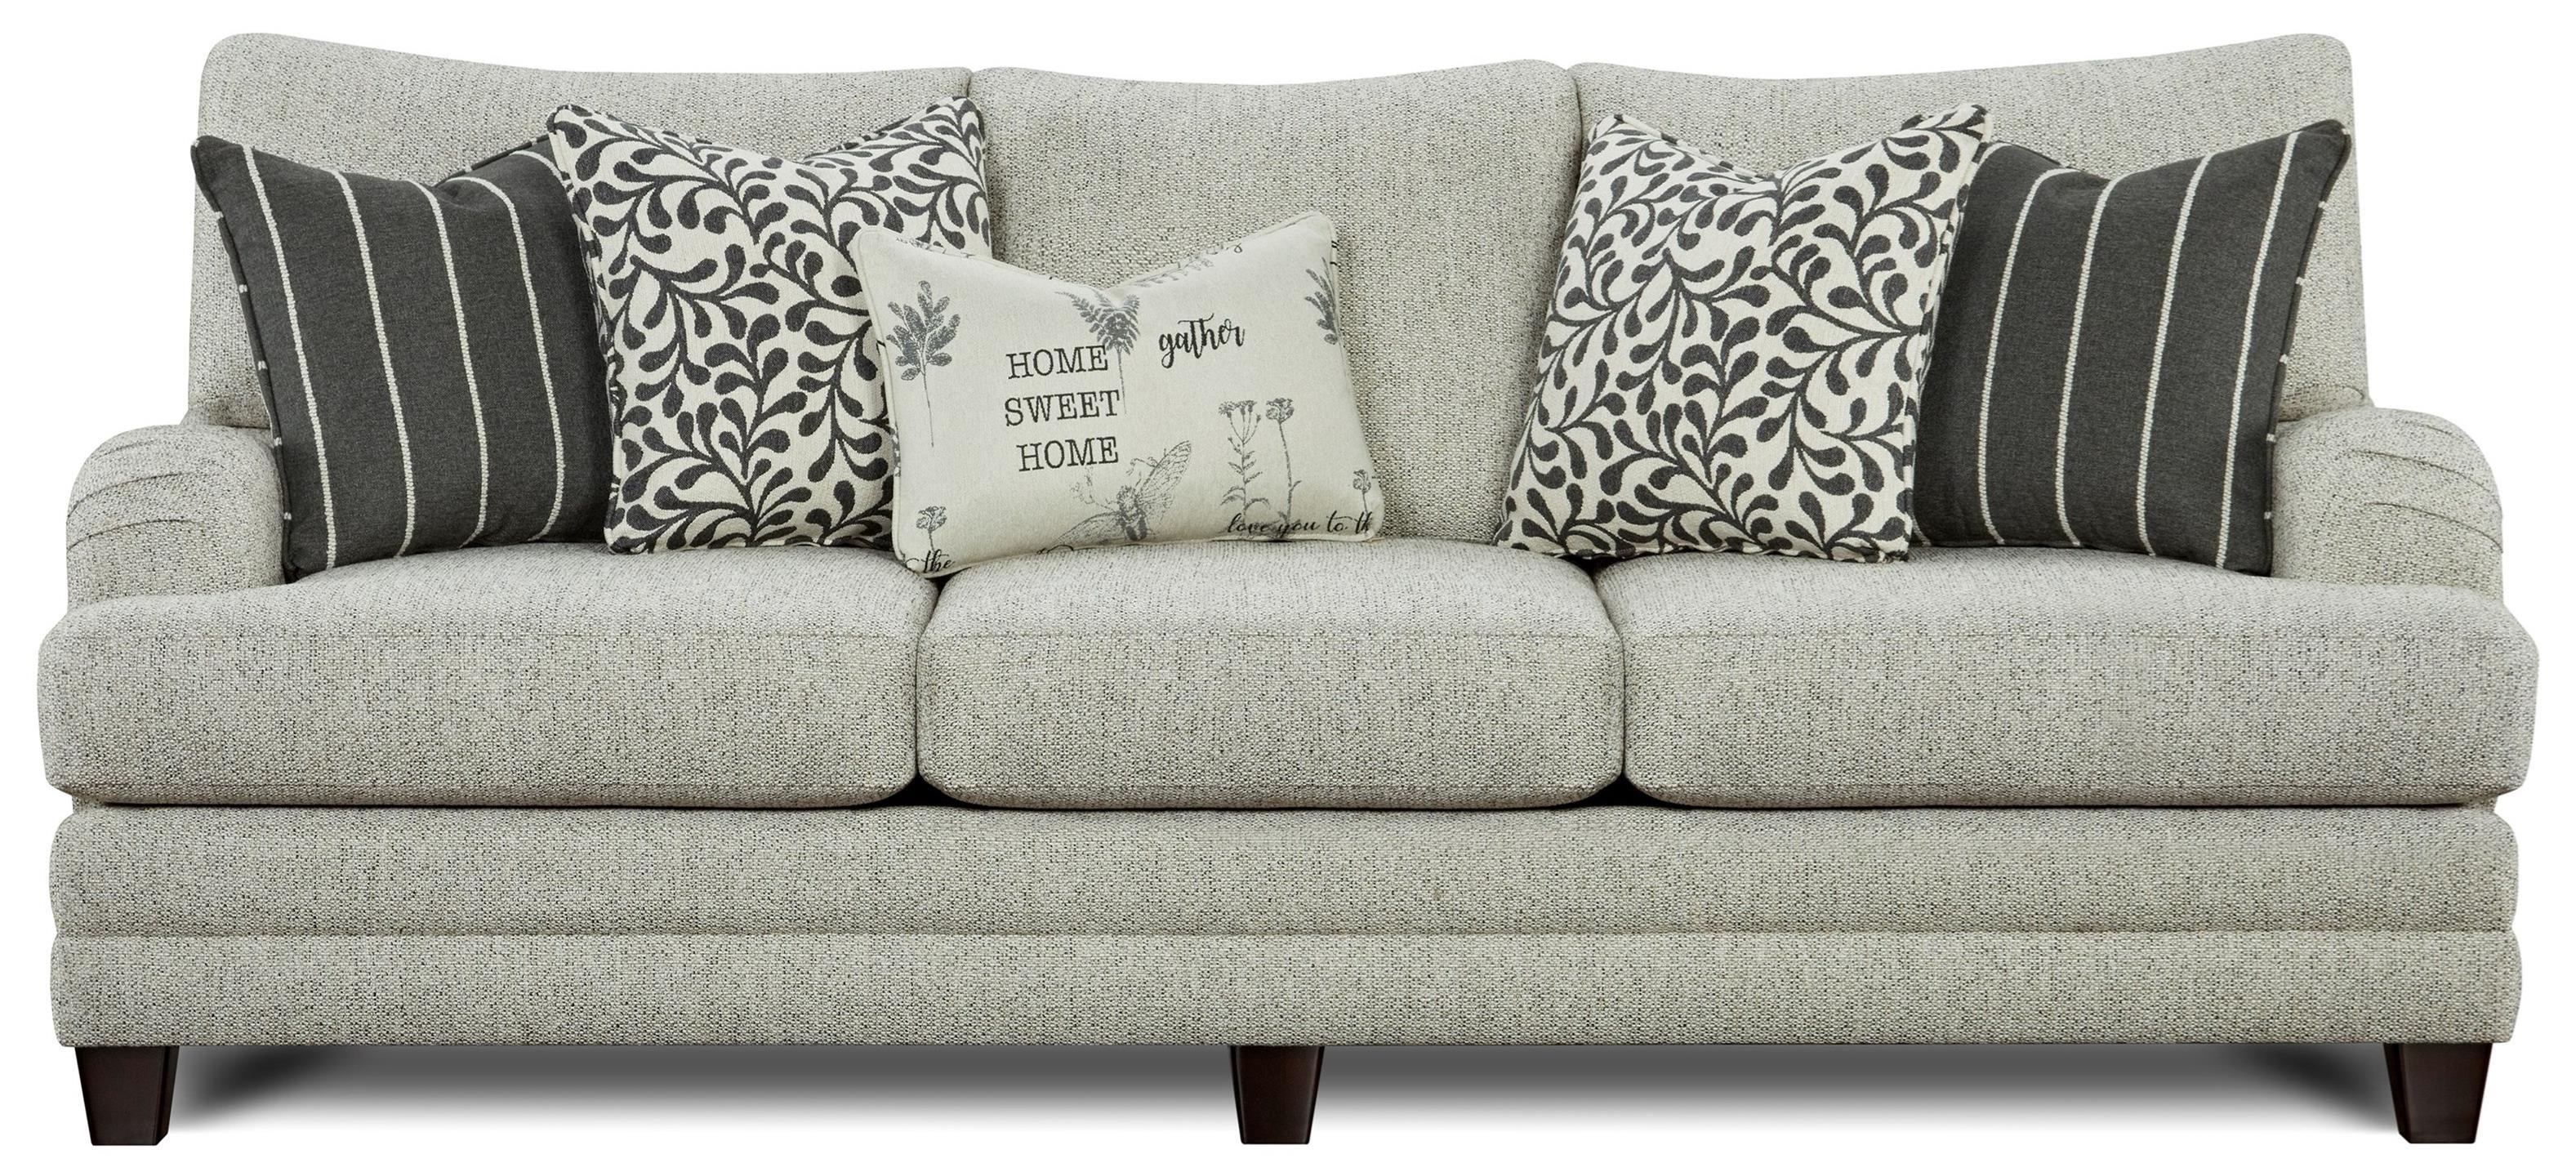 4480 Sofa by Fusion Furniture at Furniture Superstore - Rochester, MN